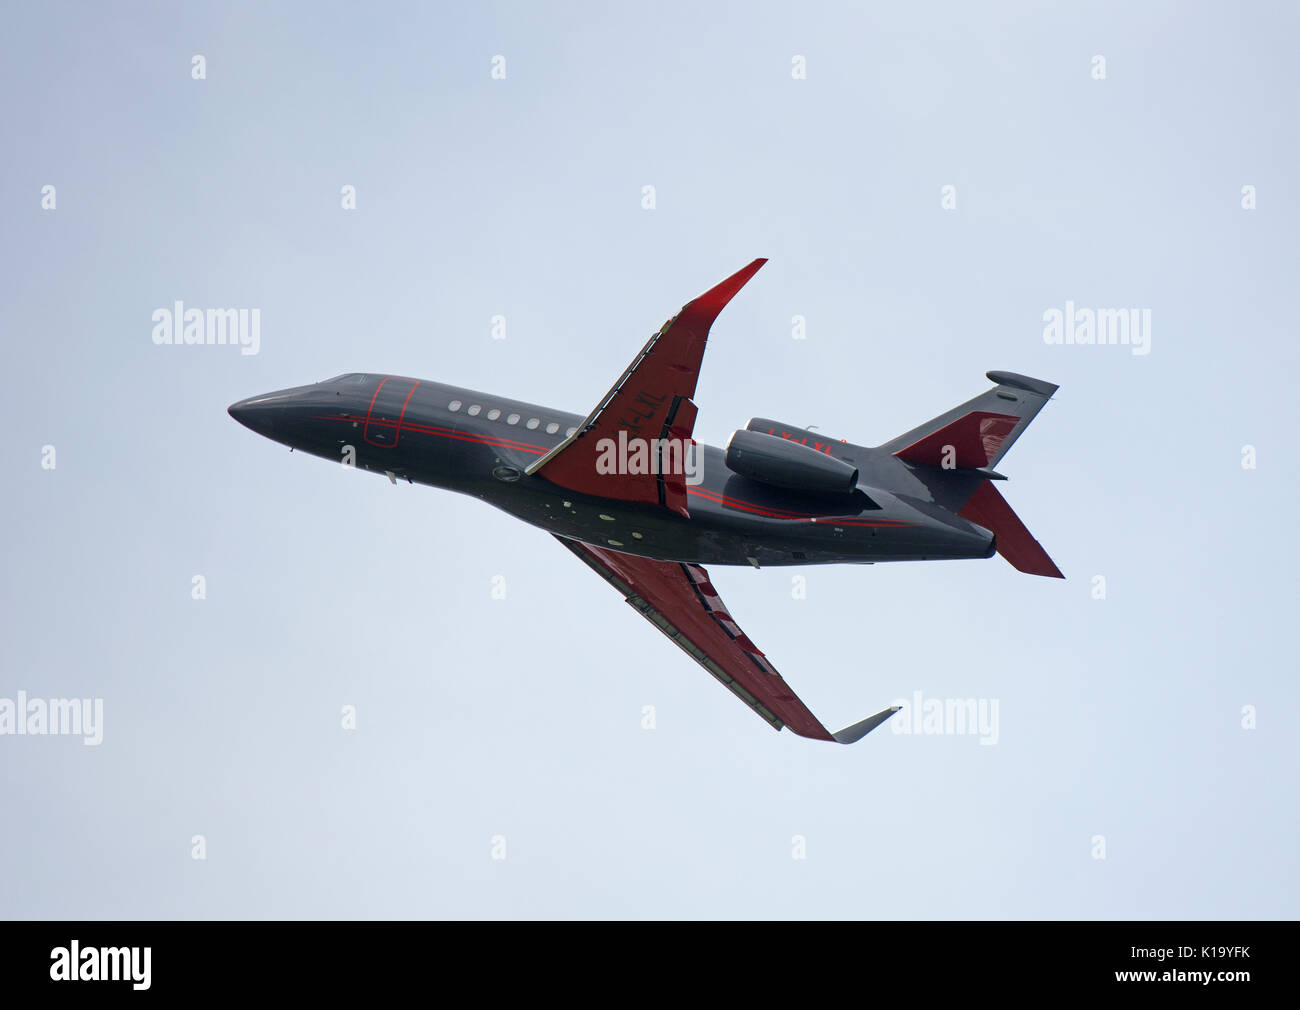 French Built Dassault 3 engined Business luxury jet aircraft at Invernees airport in the Scottish Highlands. - Stock Image